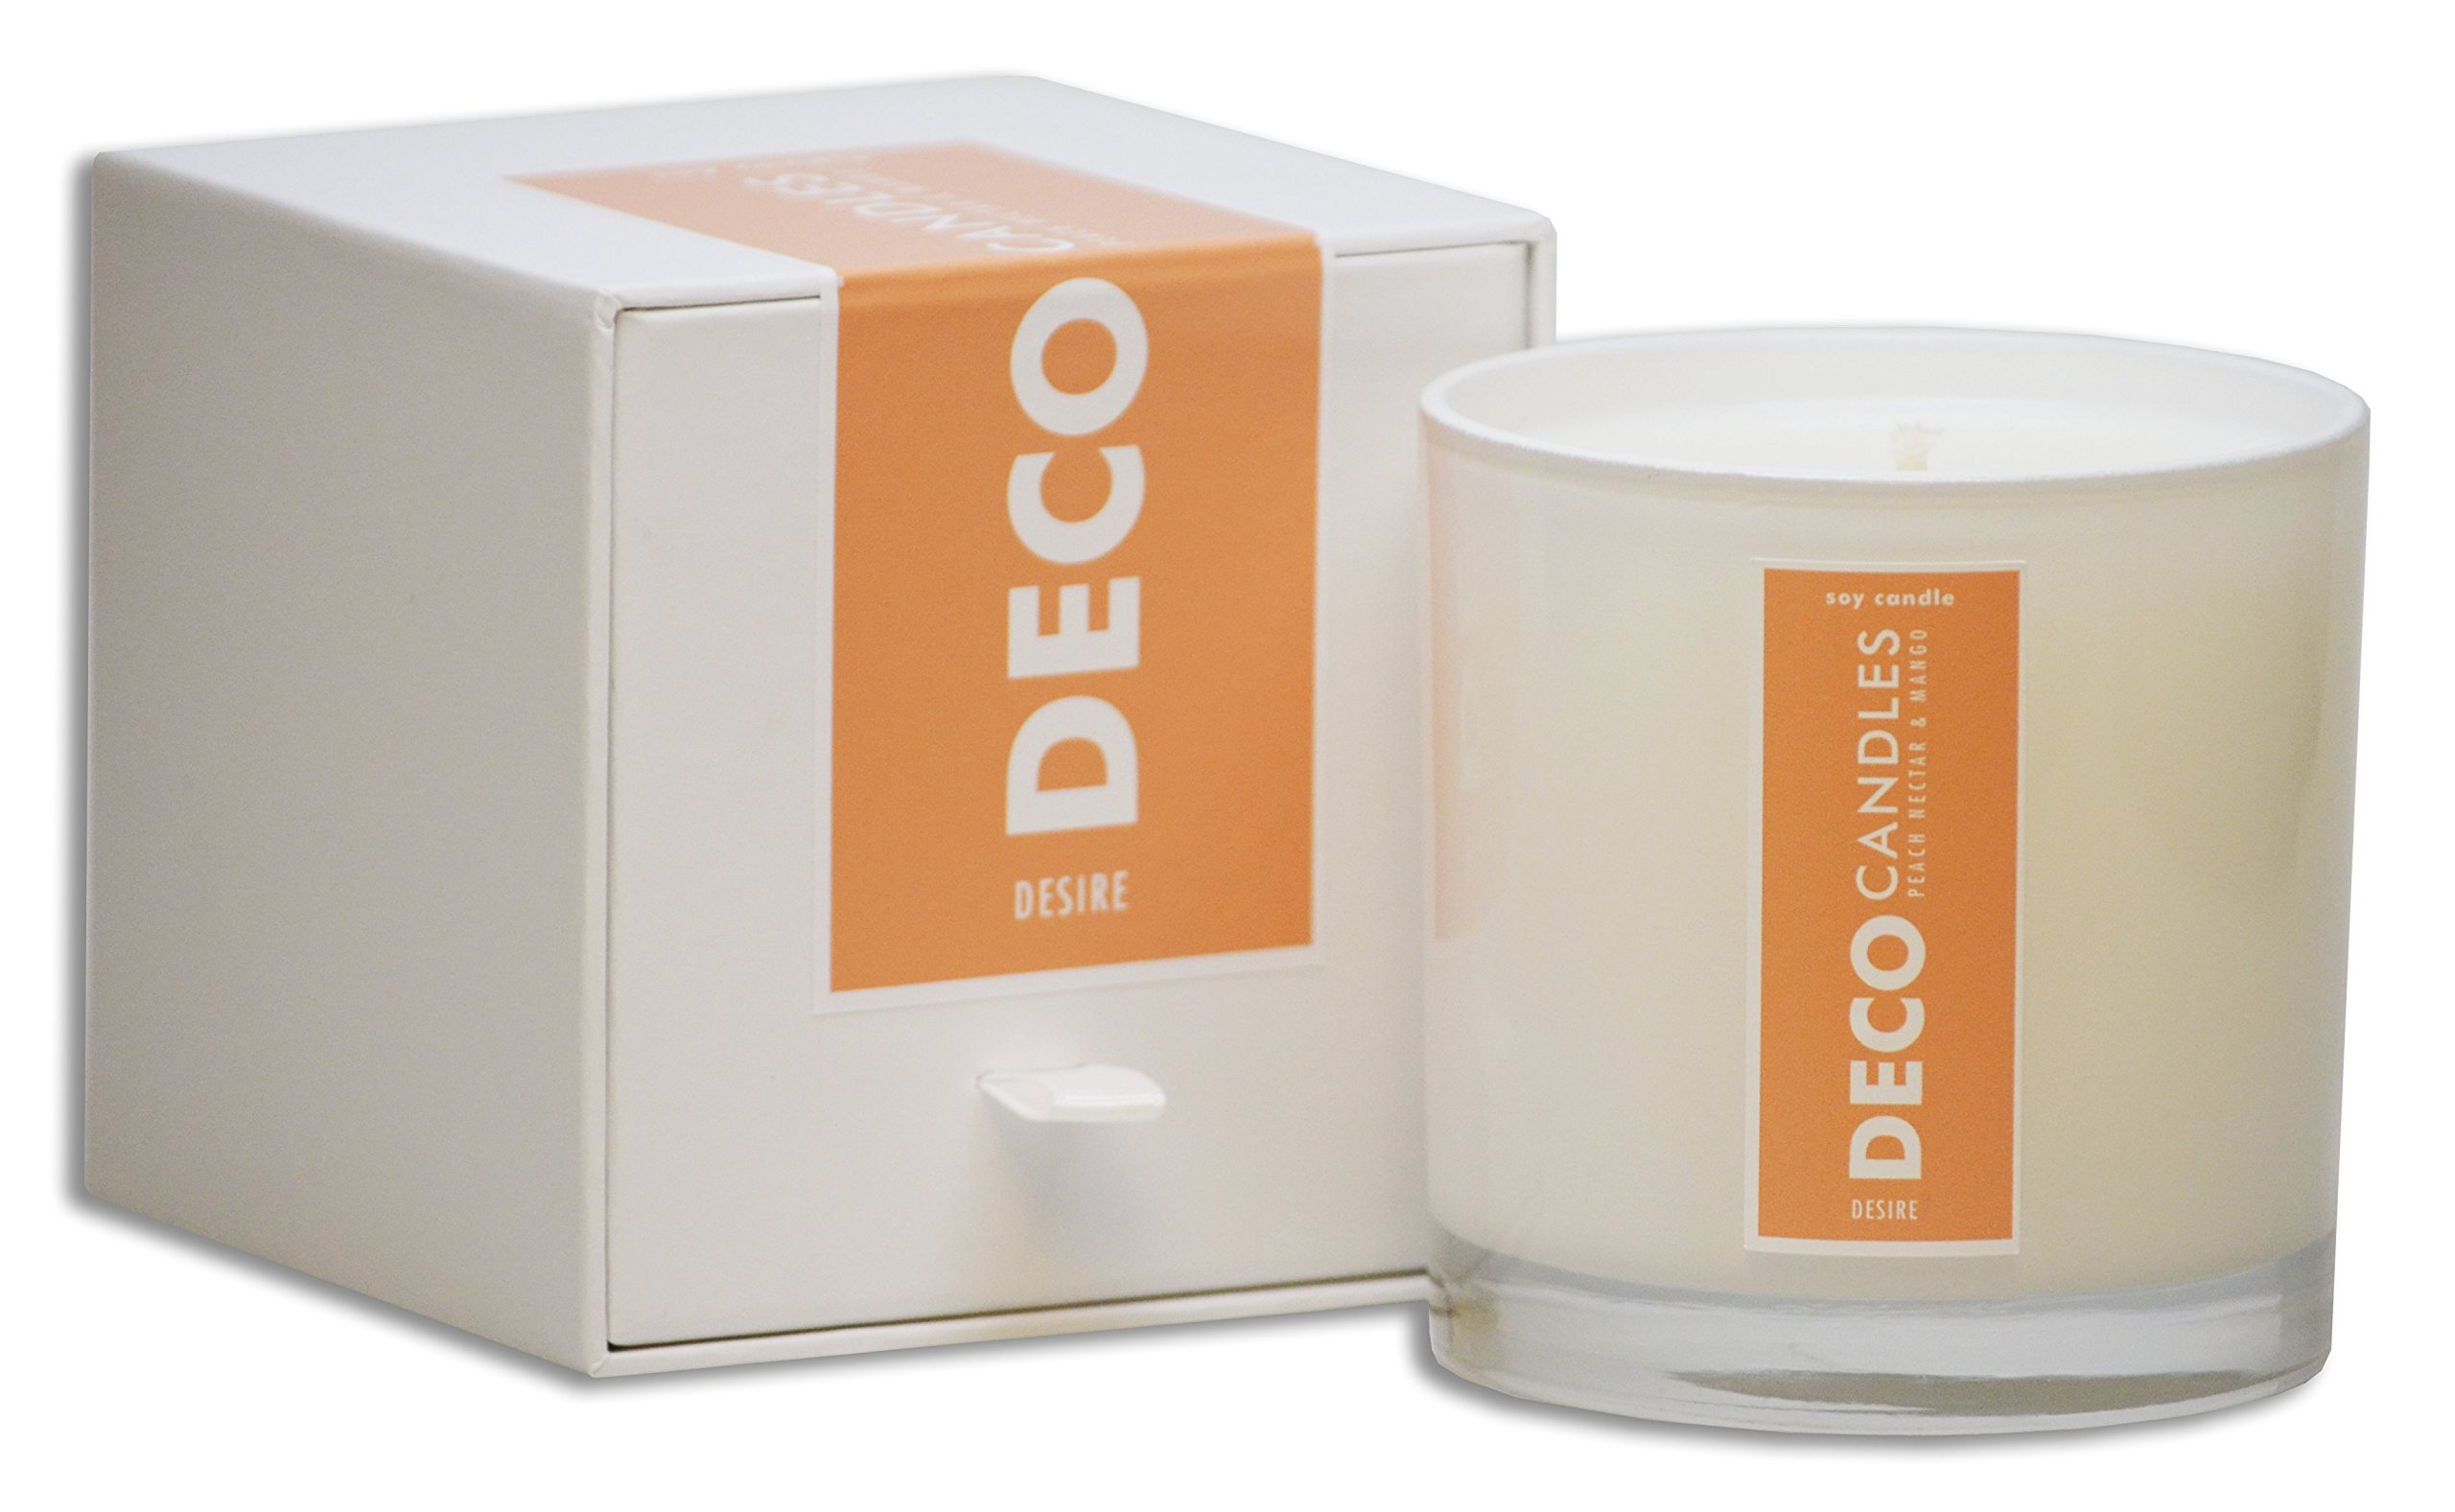 DecoCandleS | Desire - Peach Nectar & Mango - Highly Scented Candle - Long Lasting - Hand poured in the USA - Signature Scent for The Cheshire Hotel St. Louis, MO - 9 Oz.